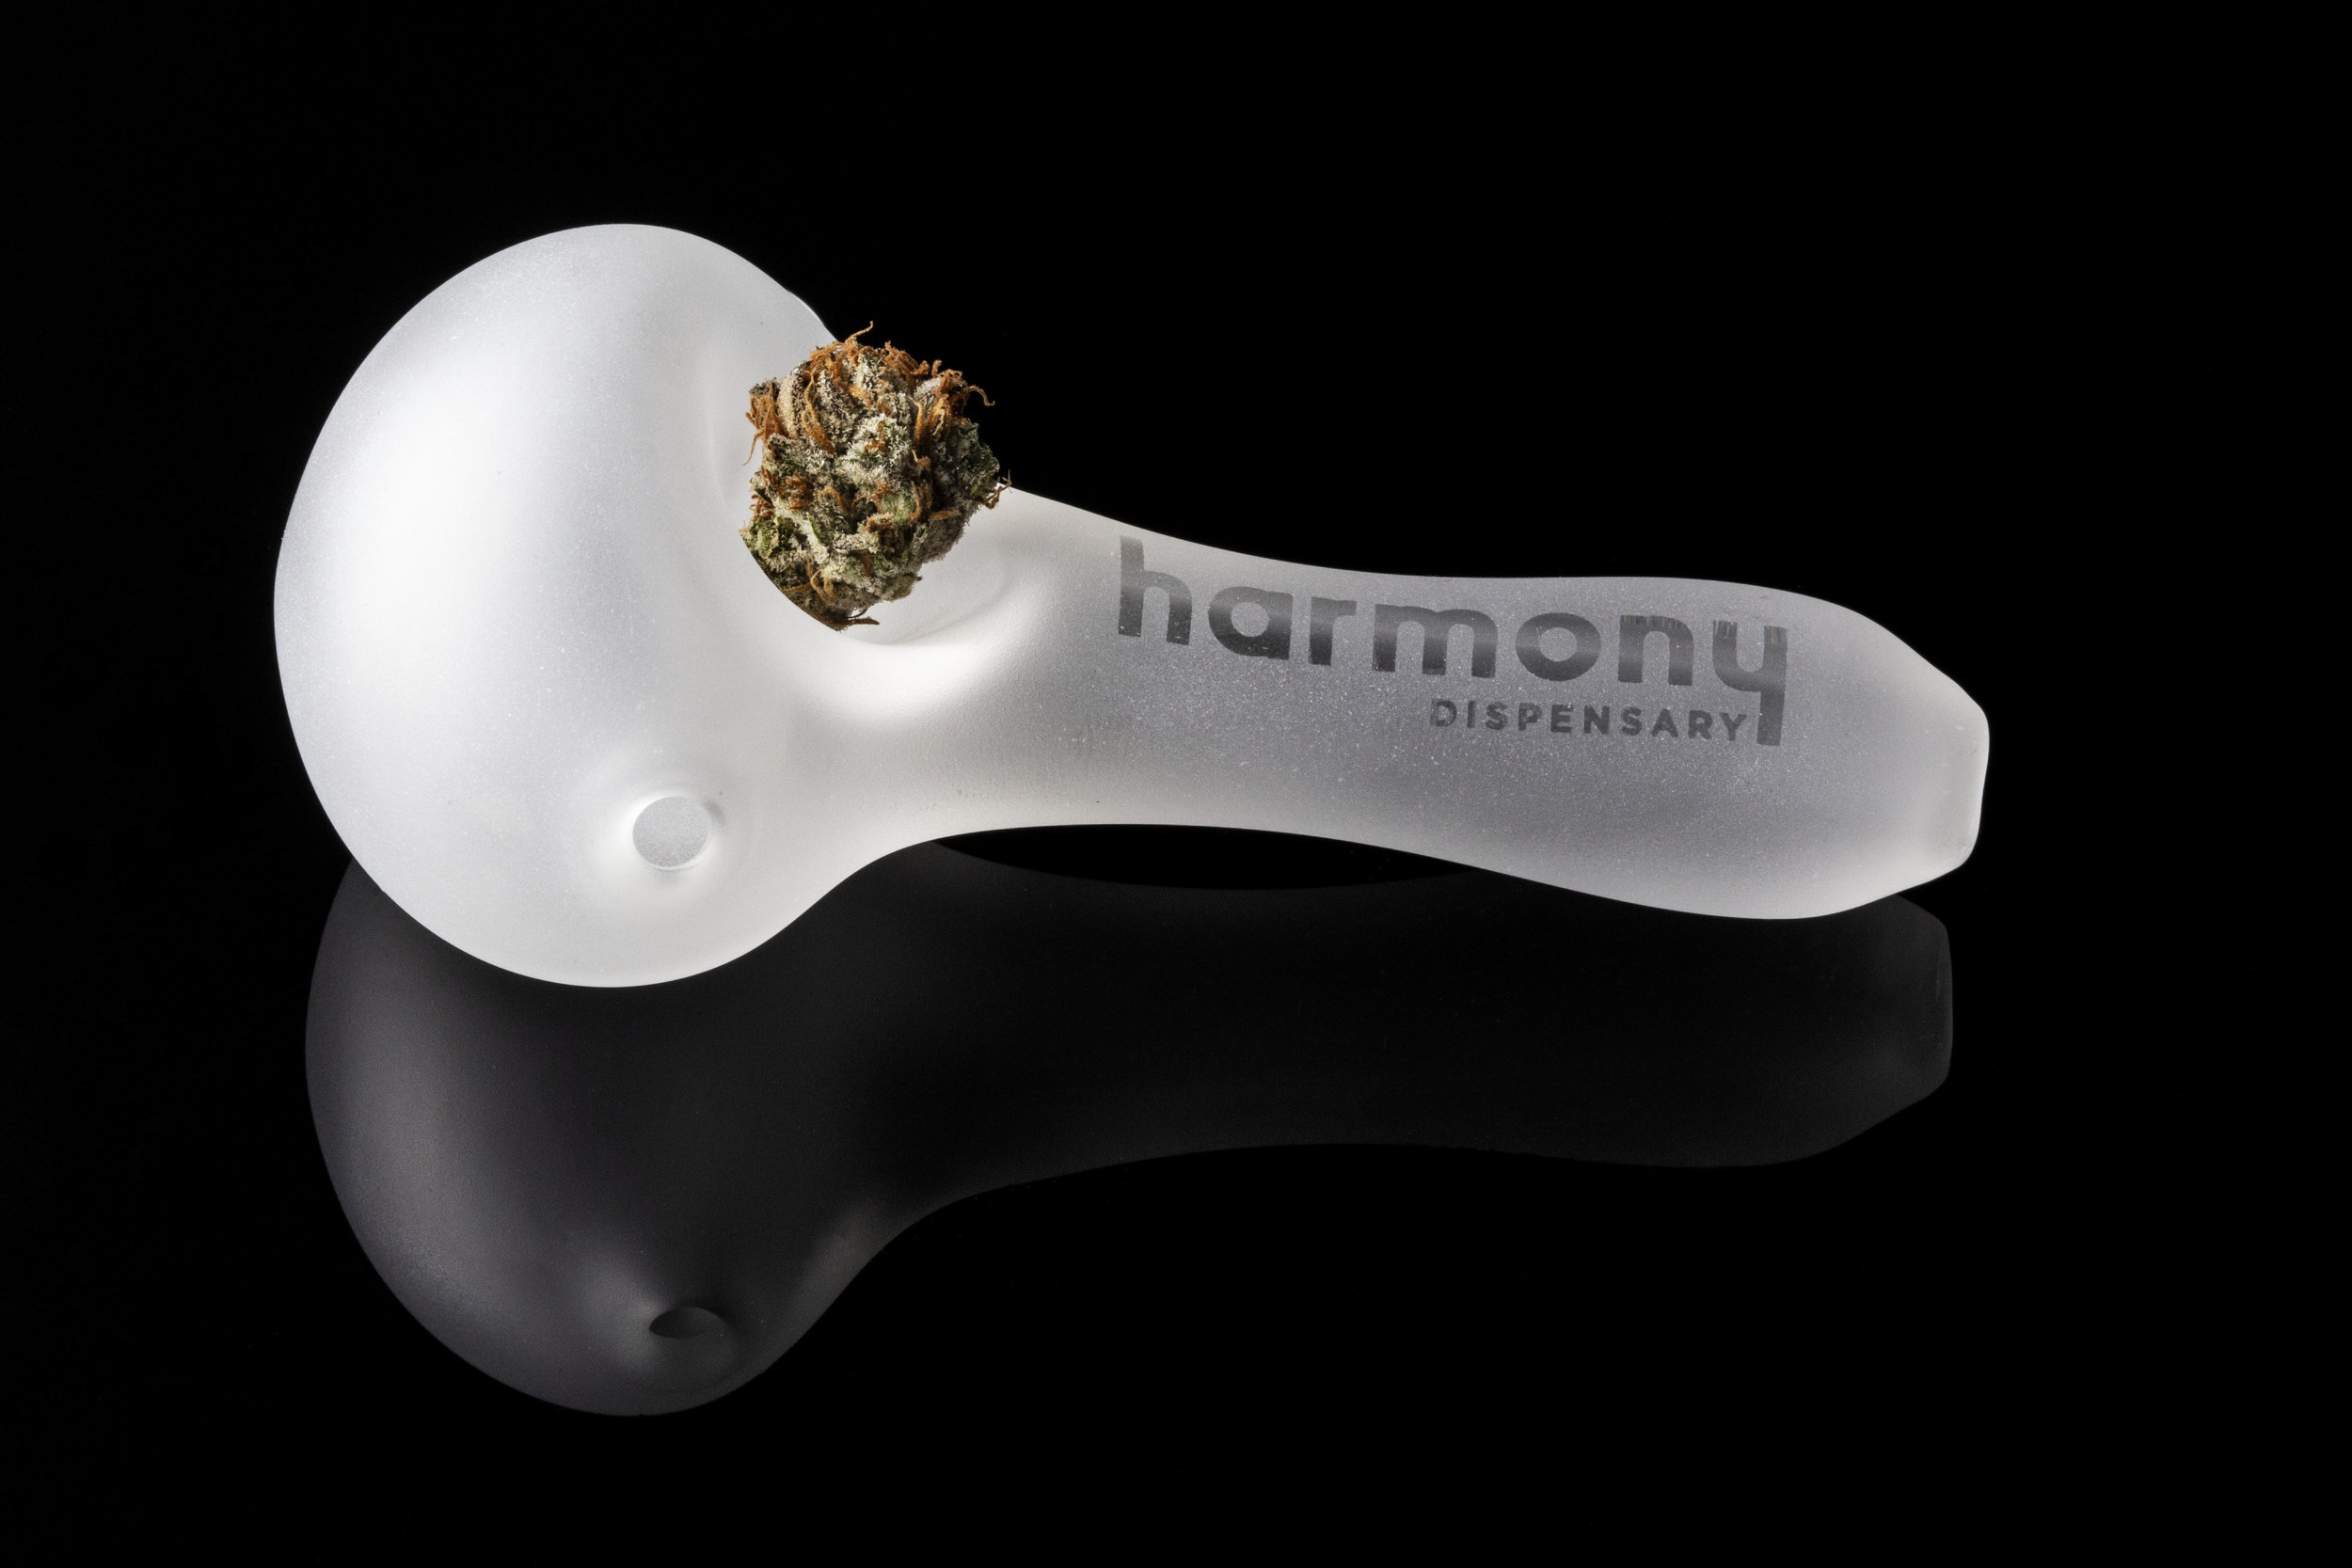 2019_02_10_Pipes_Bowls_Merchandise_Cultivation_Flowering_Harmony_Dispensary_Cannabis_Marijuana_06.jpg